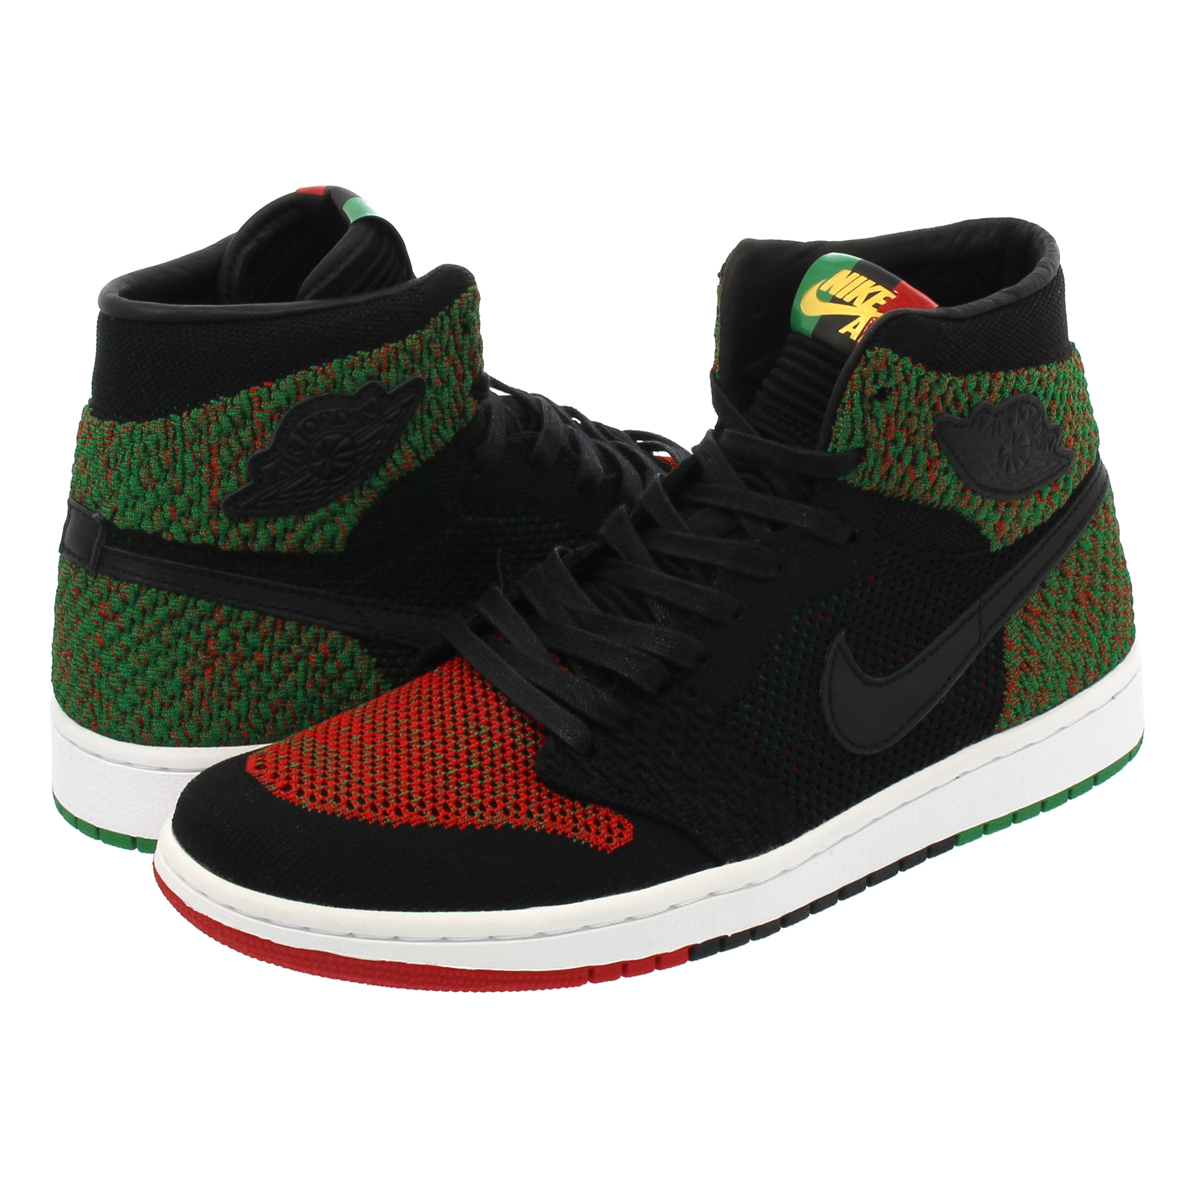 NIKE AIR JORDAN 1 RETRO HIGH FLYKNIT BHM ナイキ エア ジョーダン 1 レトロ ハイ フライニット BLACK/LUCID GREEN/UNIVERSITY RED/BLACK aa2426-026